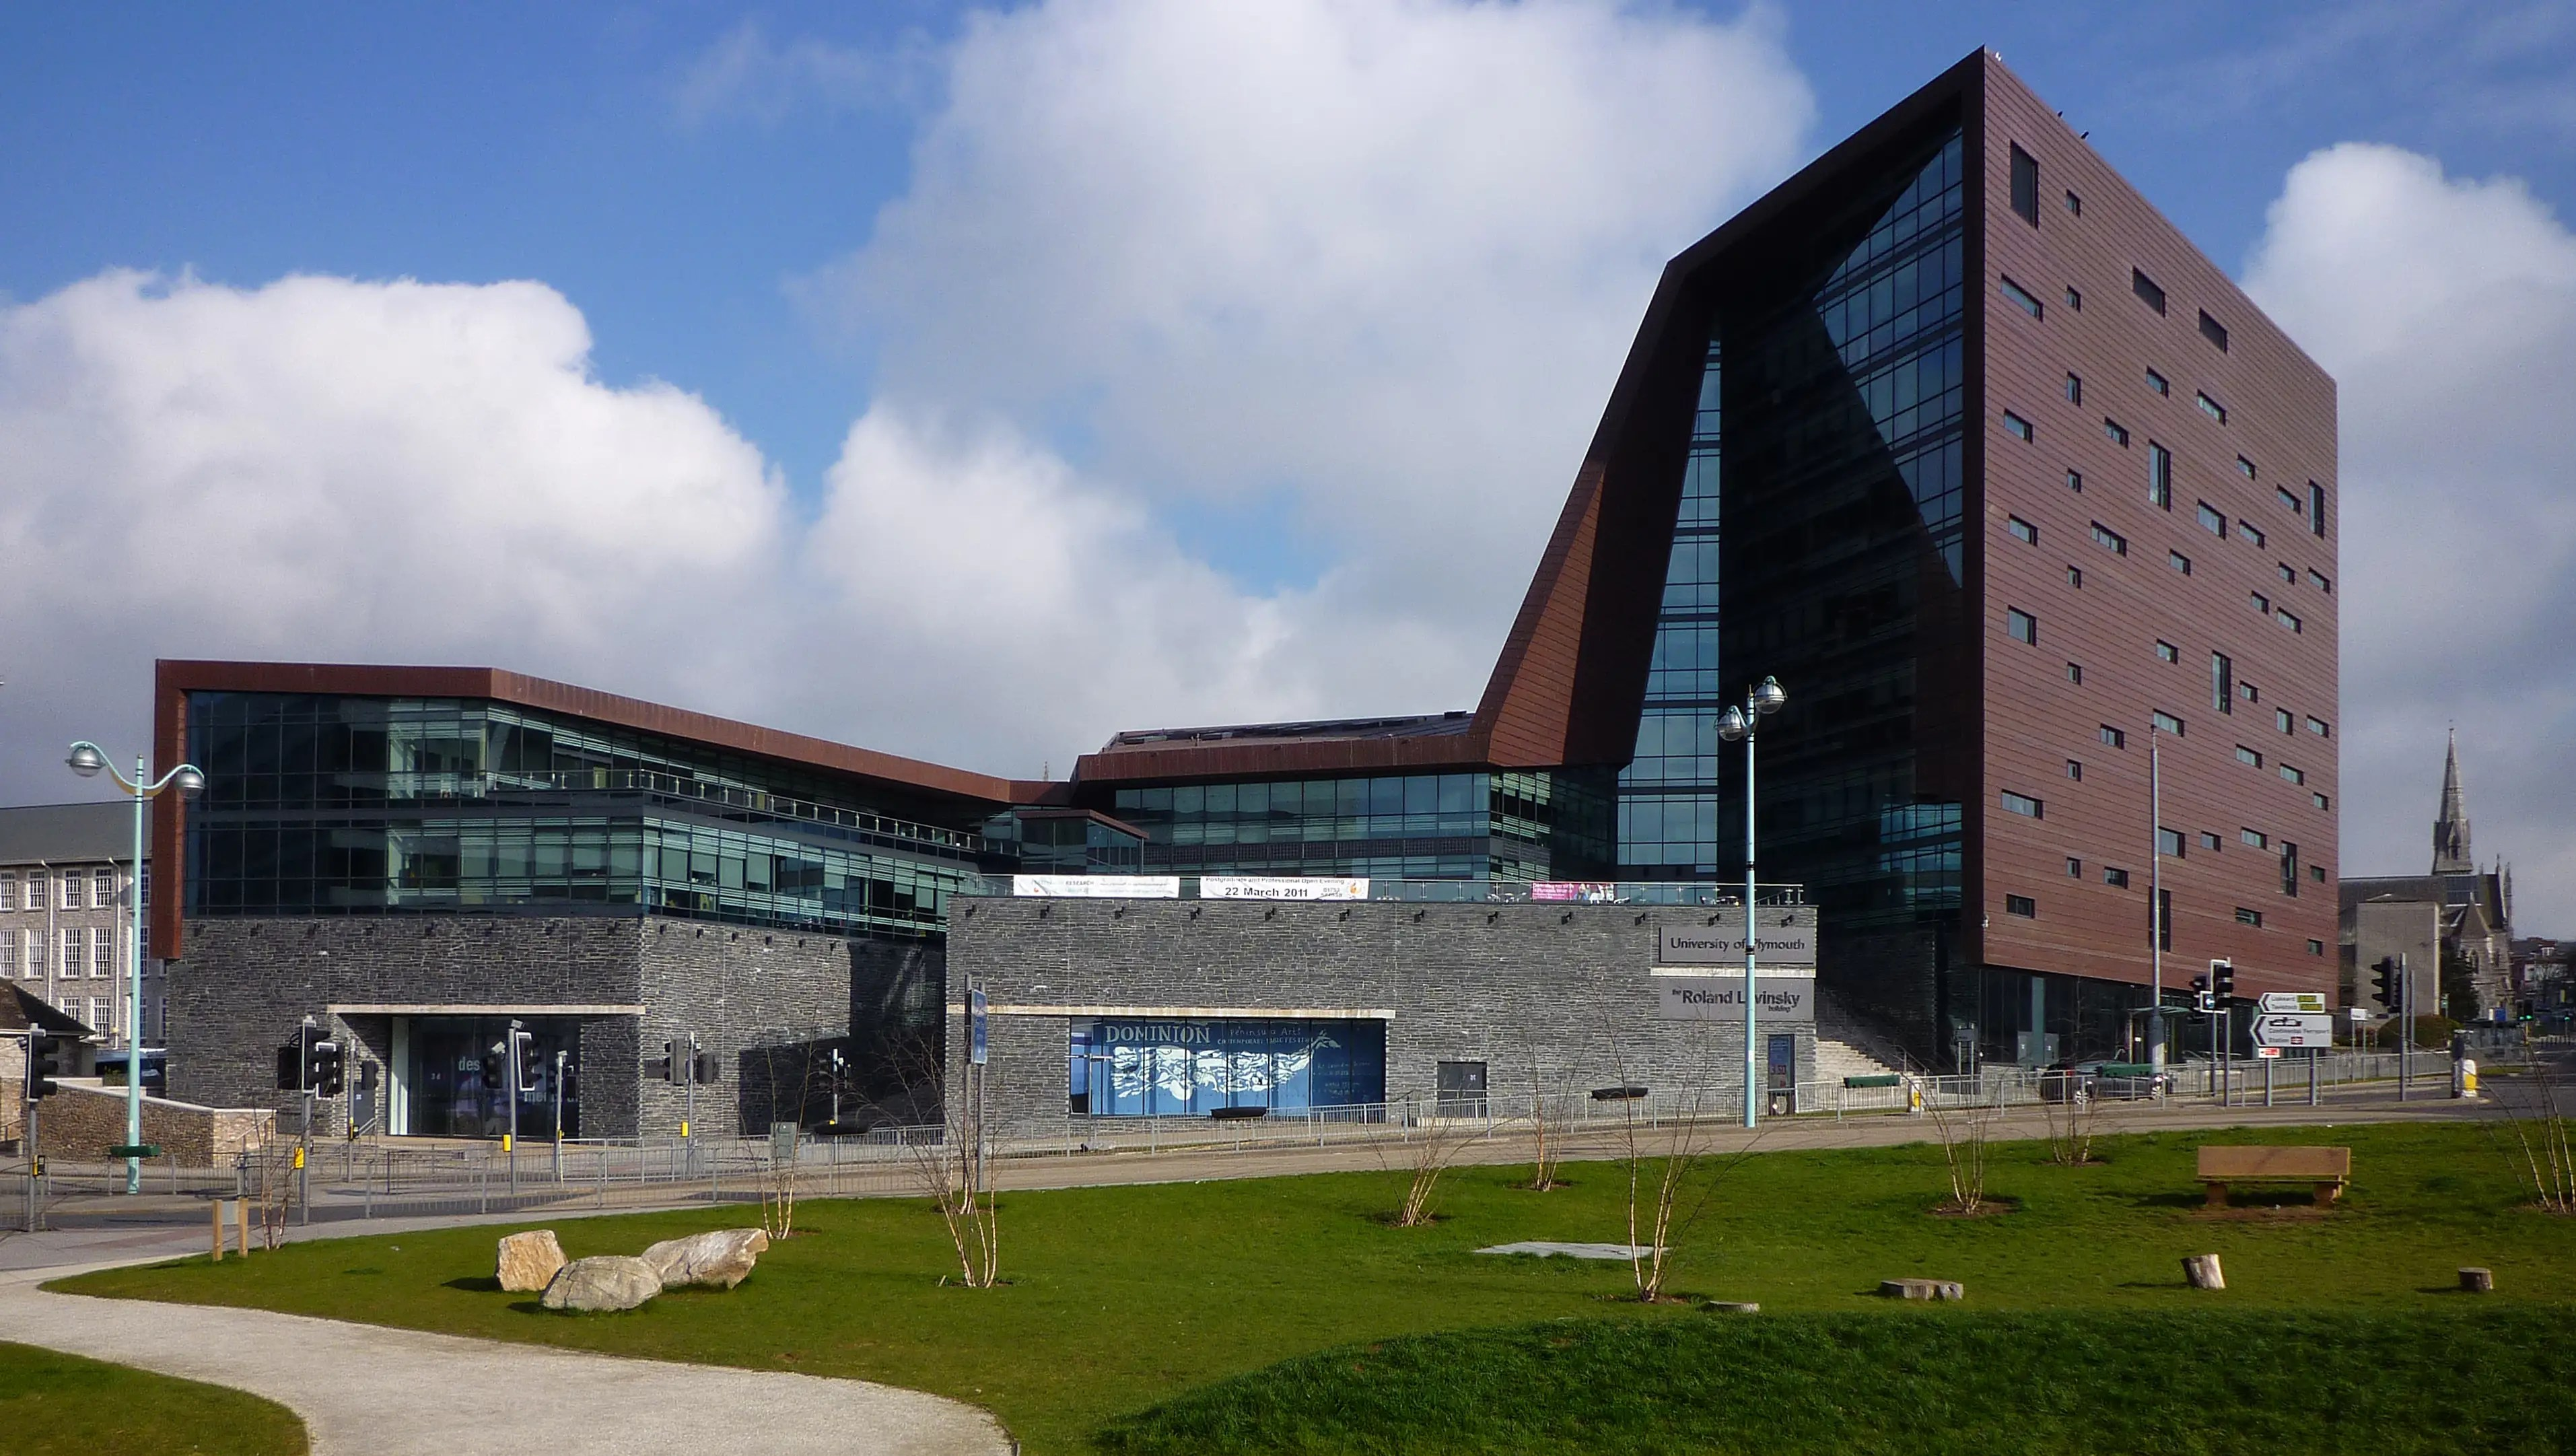 The Roland Levinsky Building at the University of Plymouth in southwestern England includes 25 classrooms, two auditoriums, a cinema and a cafe and balcony area. It was completed in 2007.